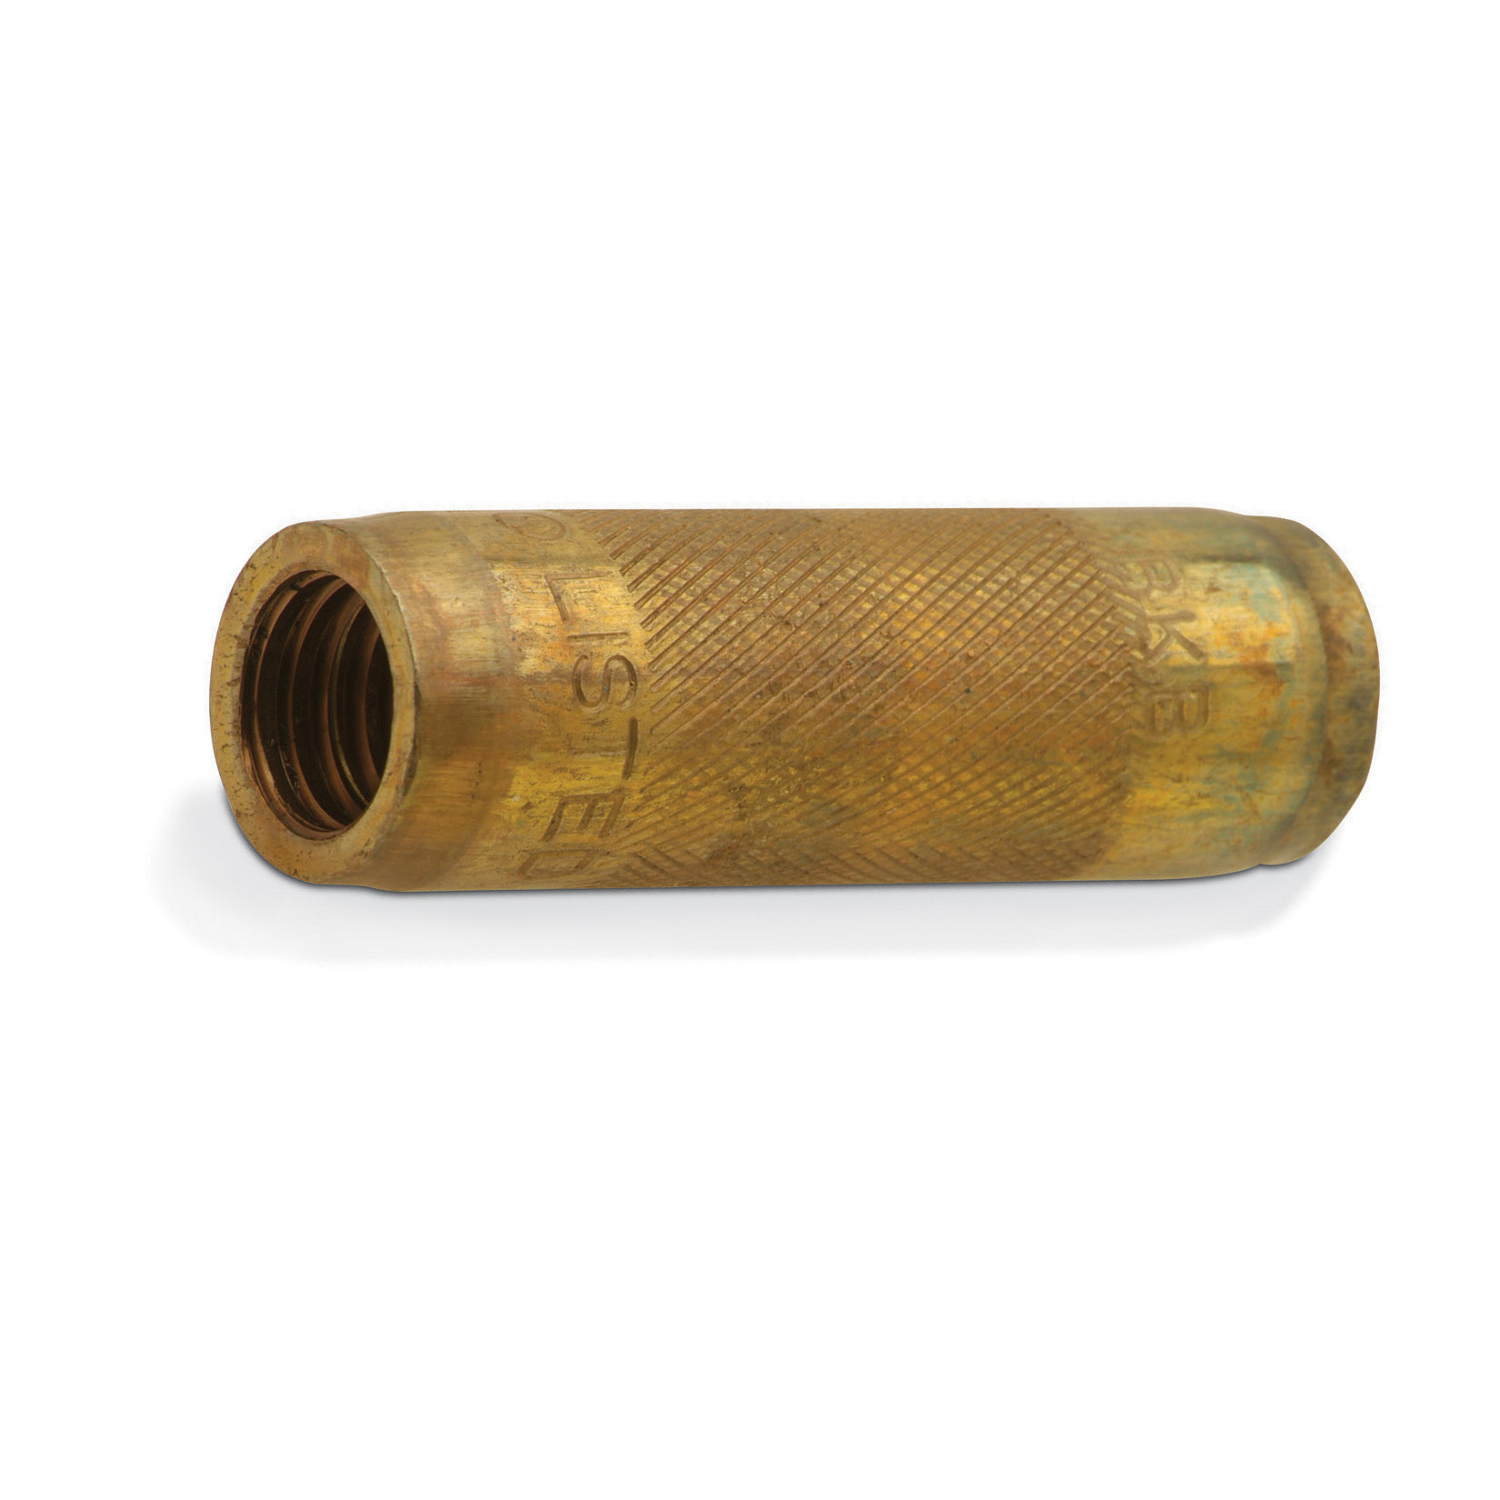 Blackburn,60C,Blackburn® 60C Type C Ground Rod Coupling, 5/8 in Dia, 5/8-11, For Use With Standard Threaded Sectional Rods, Copper